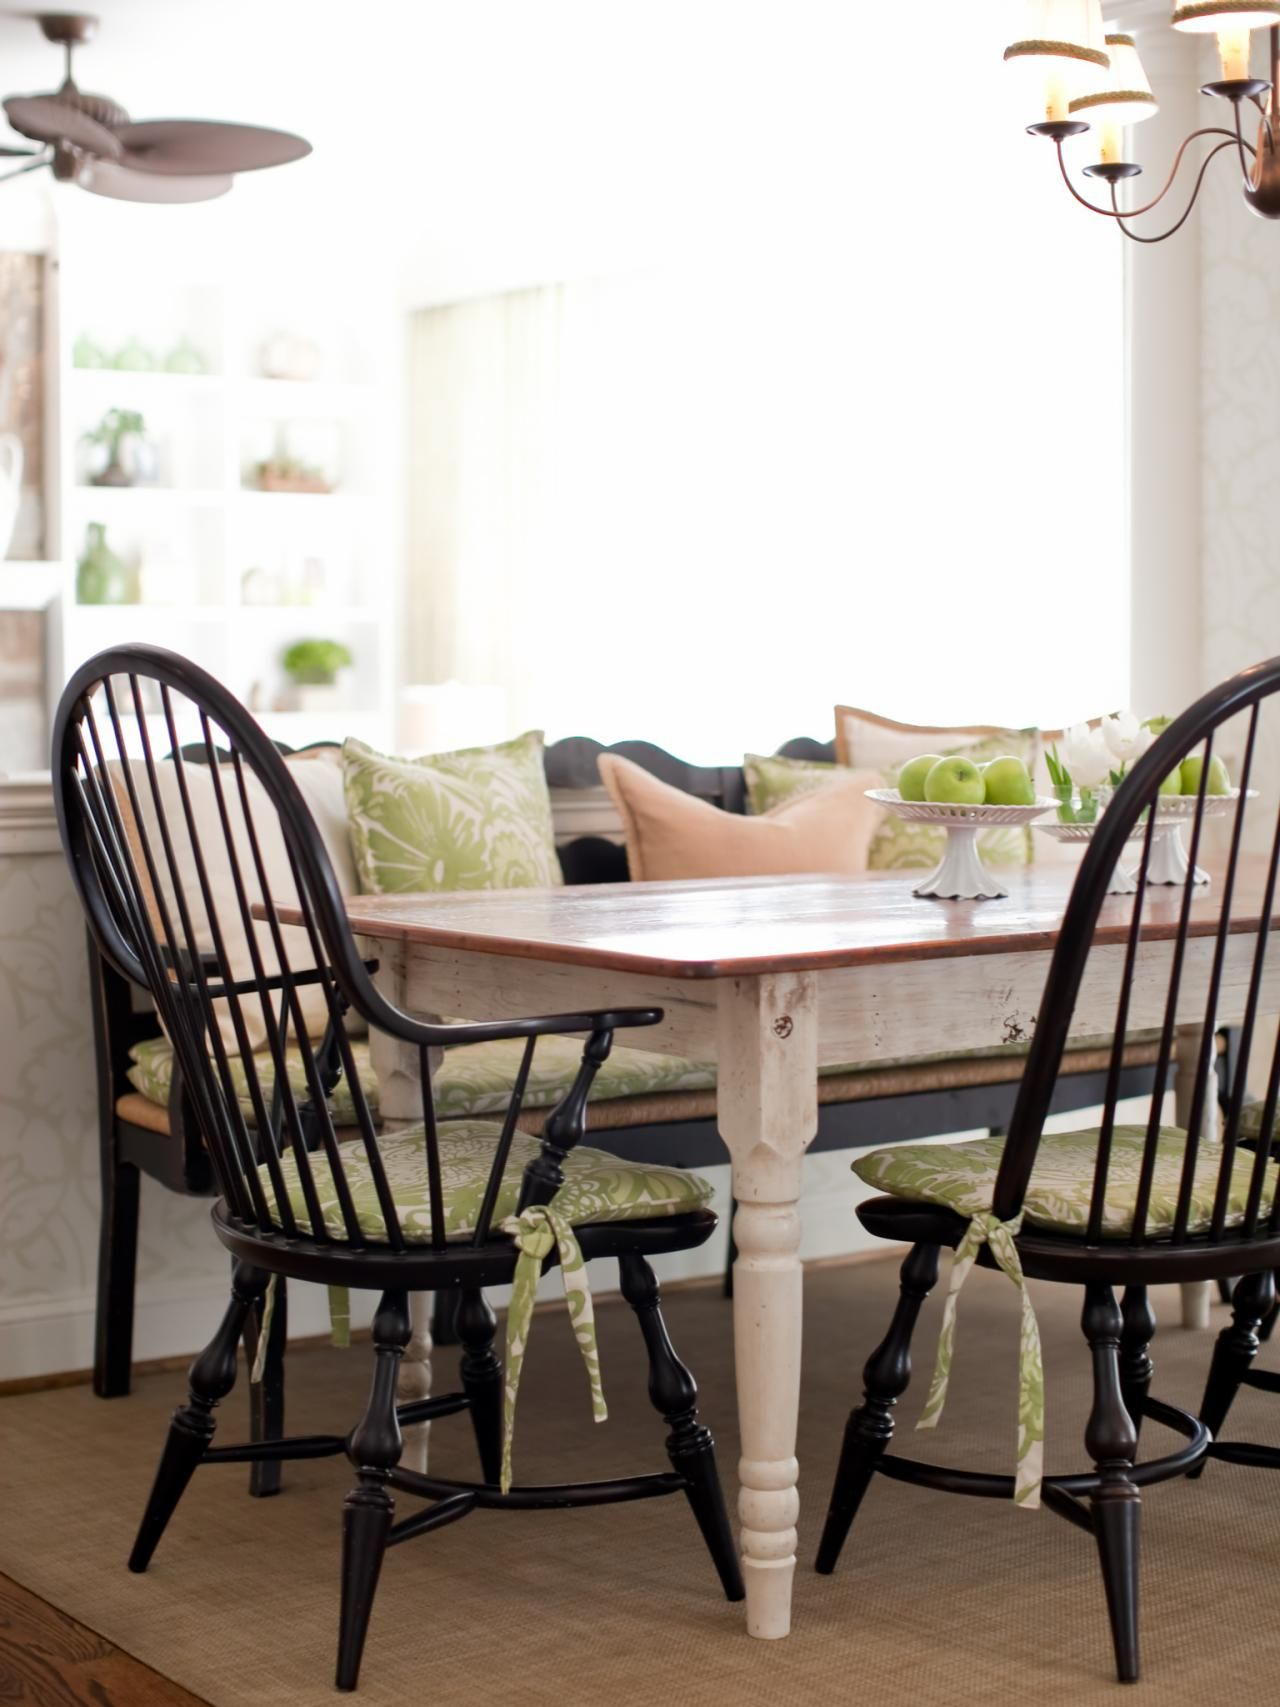 This Country Dining Setting Features A Farmhouse Table With Black Windsor  Chairs And Bench To Give The Space A More Causal Feel.  Green And White Pattern ...